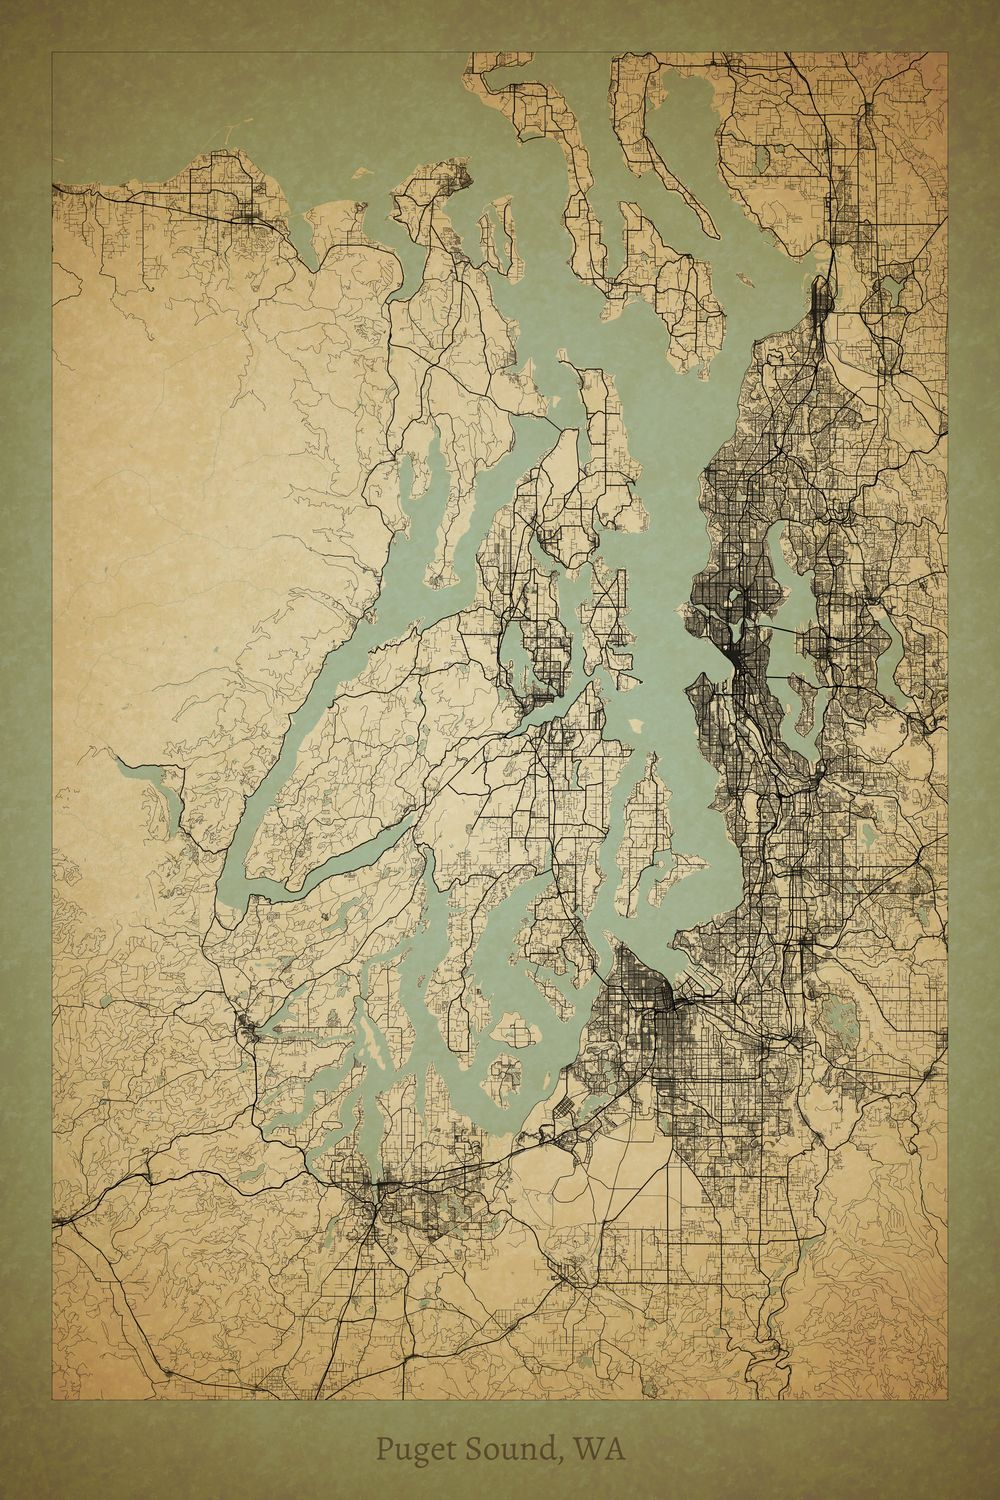 Our new favorite map here at project jefferson the puget sound in our new favorite map here at project jefferson the puget sound in washington state publicscrutiny Choice Image